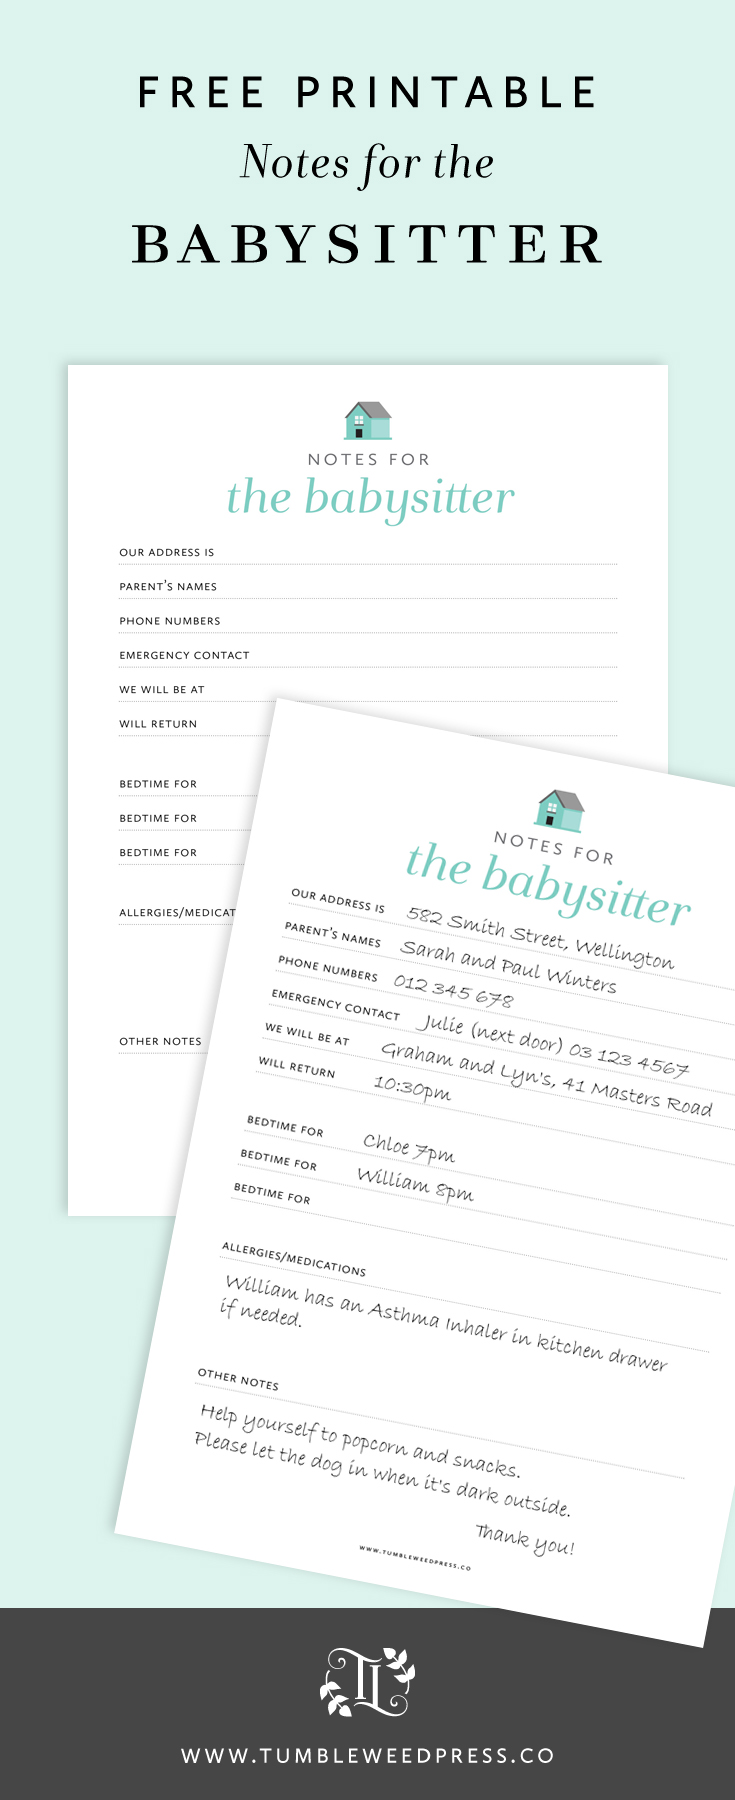 Free Babysitter Notes Printable by TumbleweedPress.Co